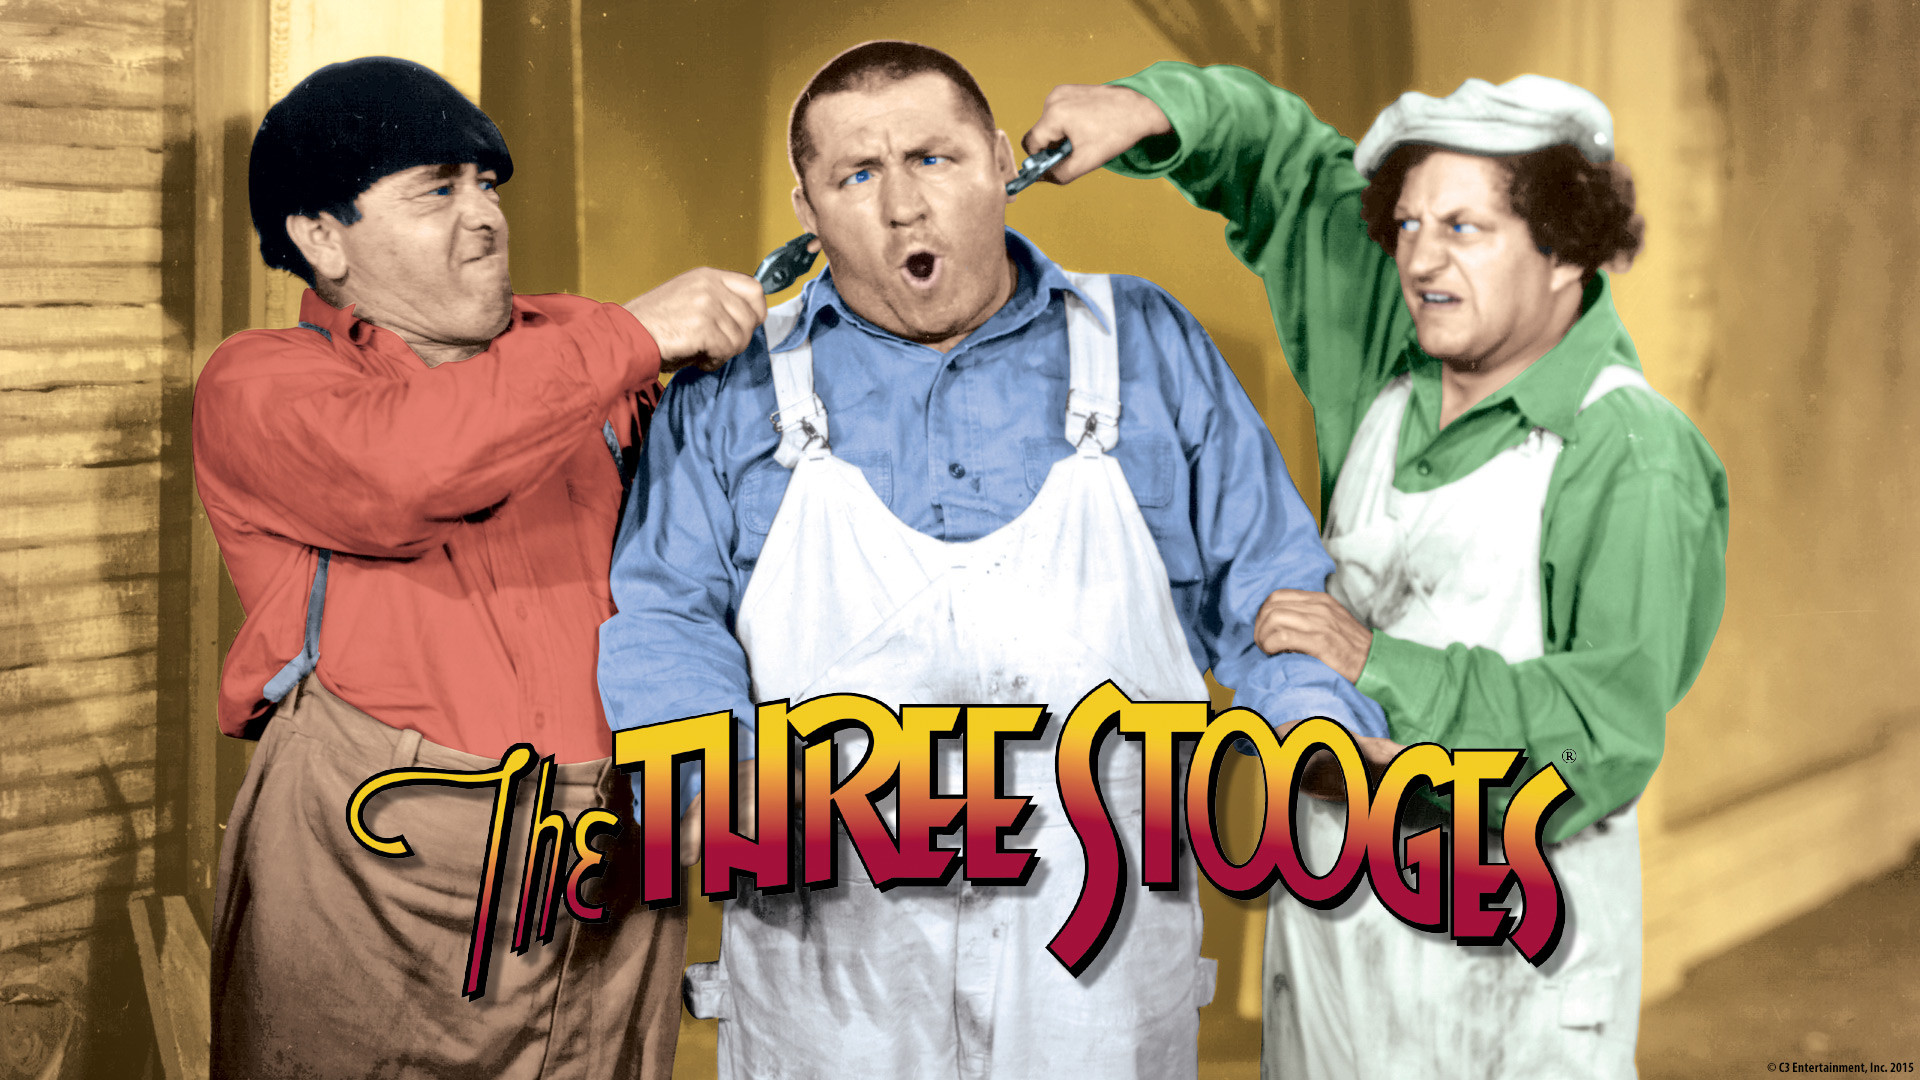 The Three Stooges Wallpaper 75 Images